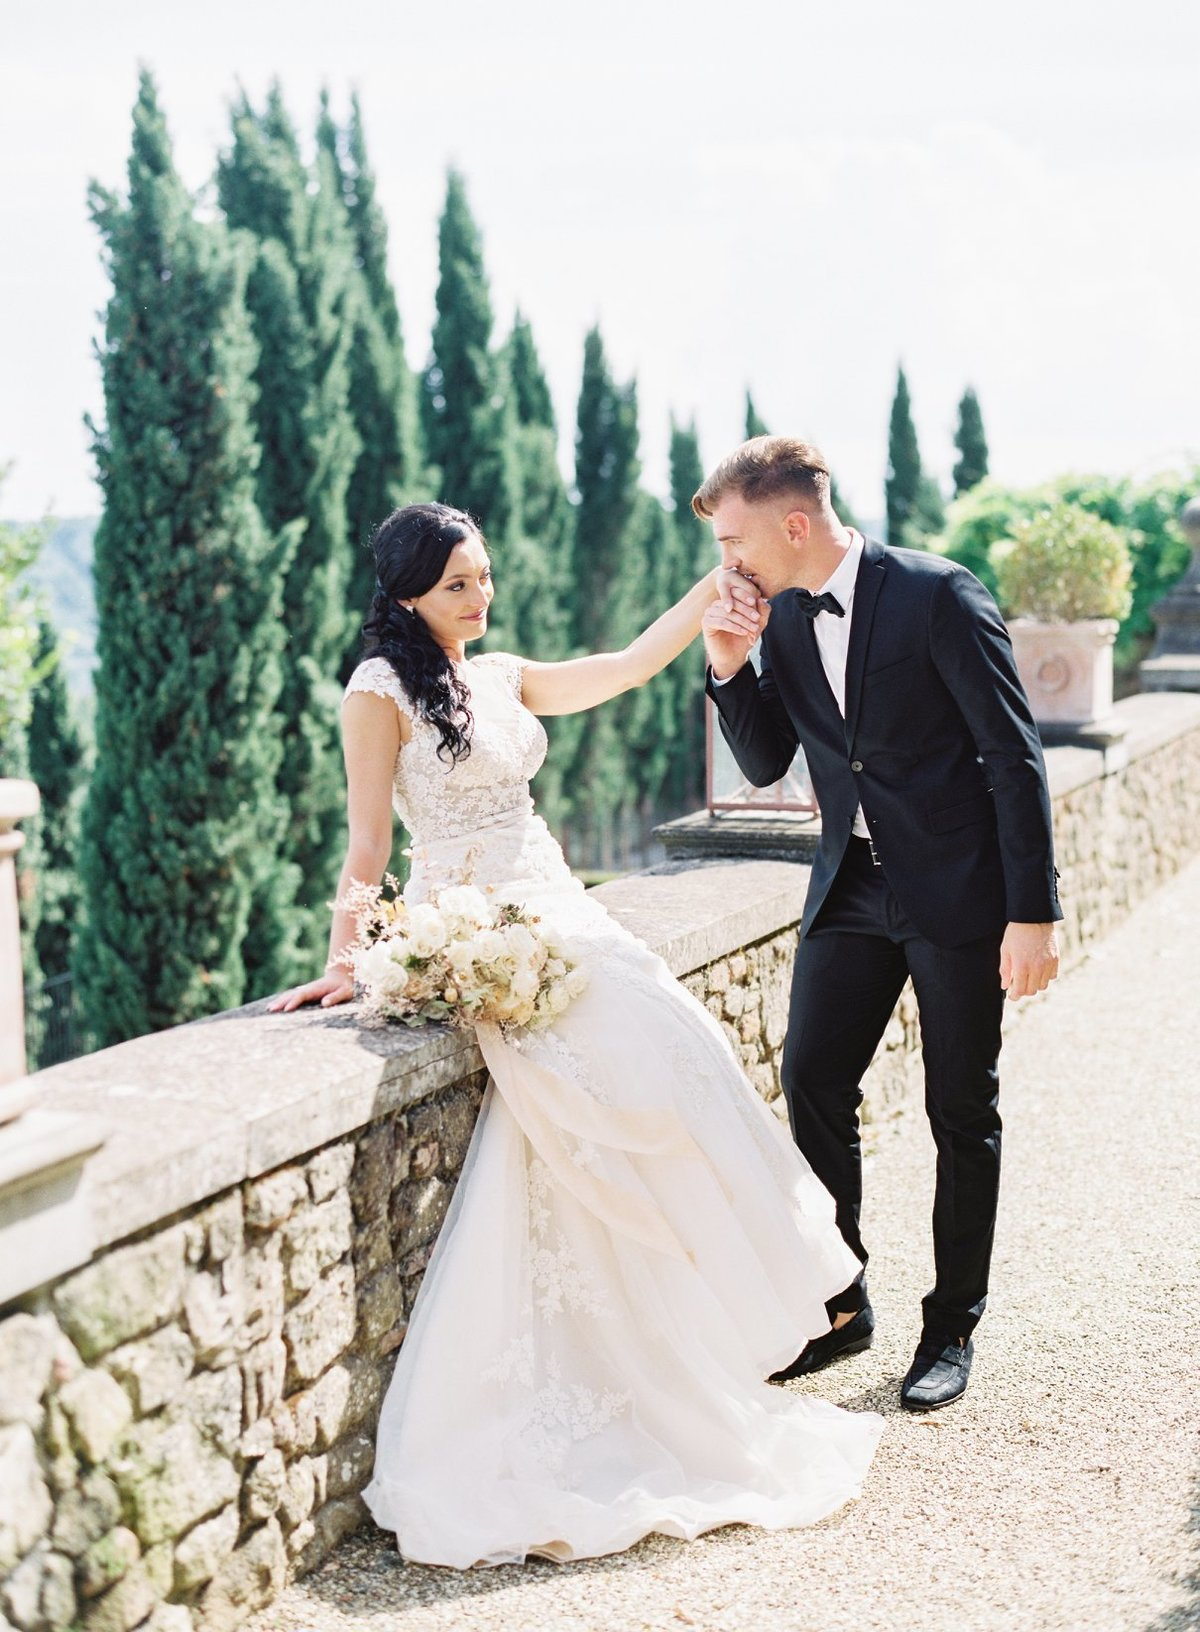 Wedding in Tuscany - Elegant Bride and Groom